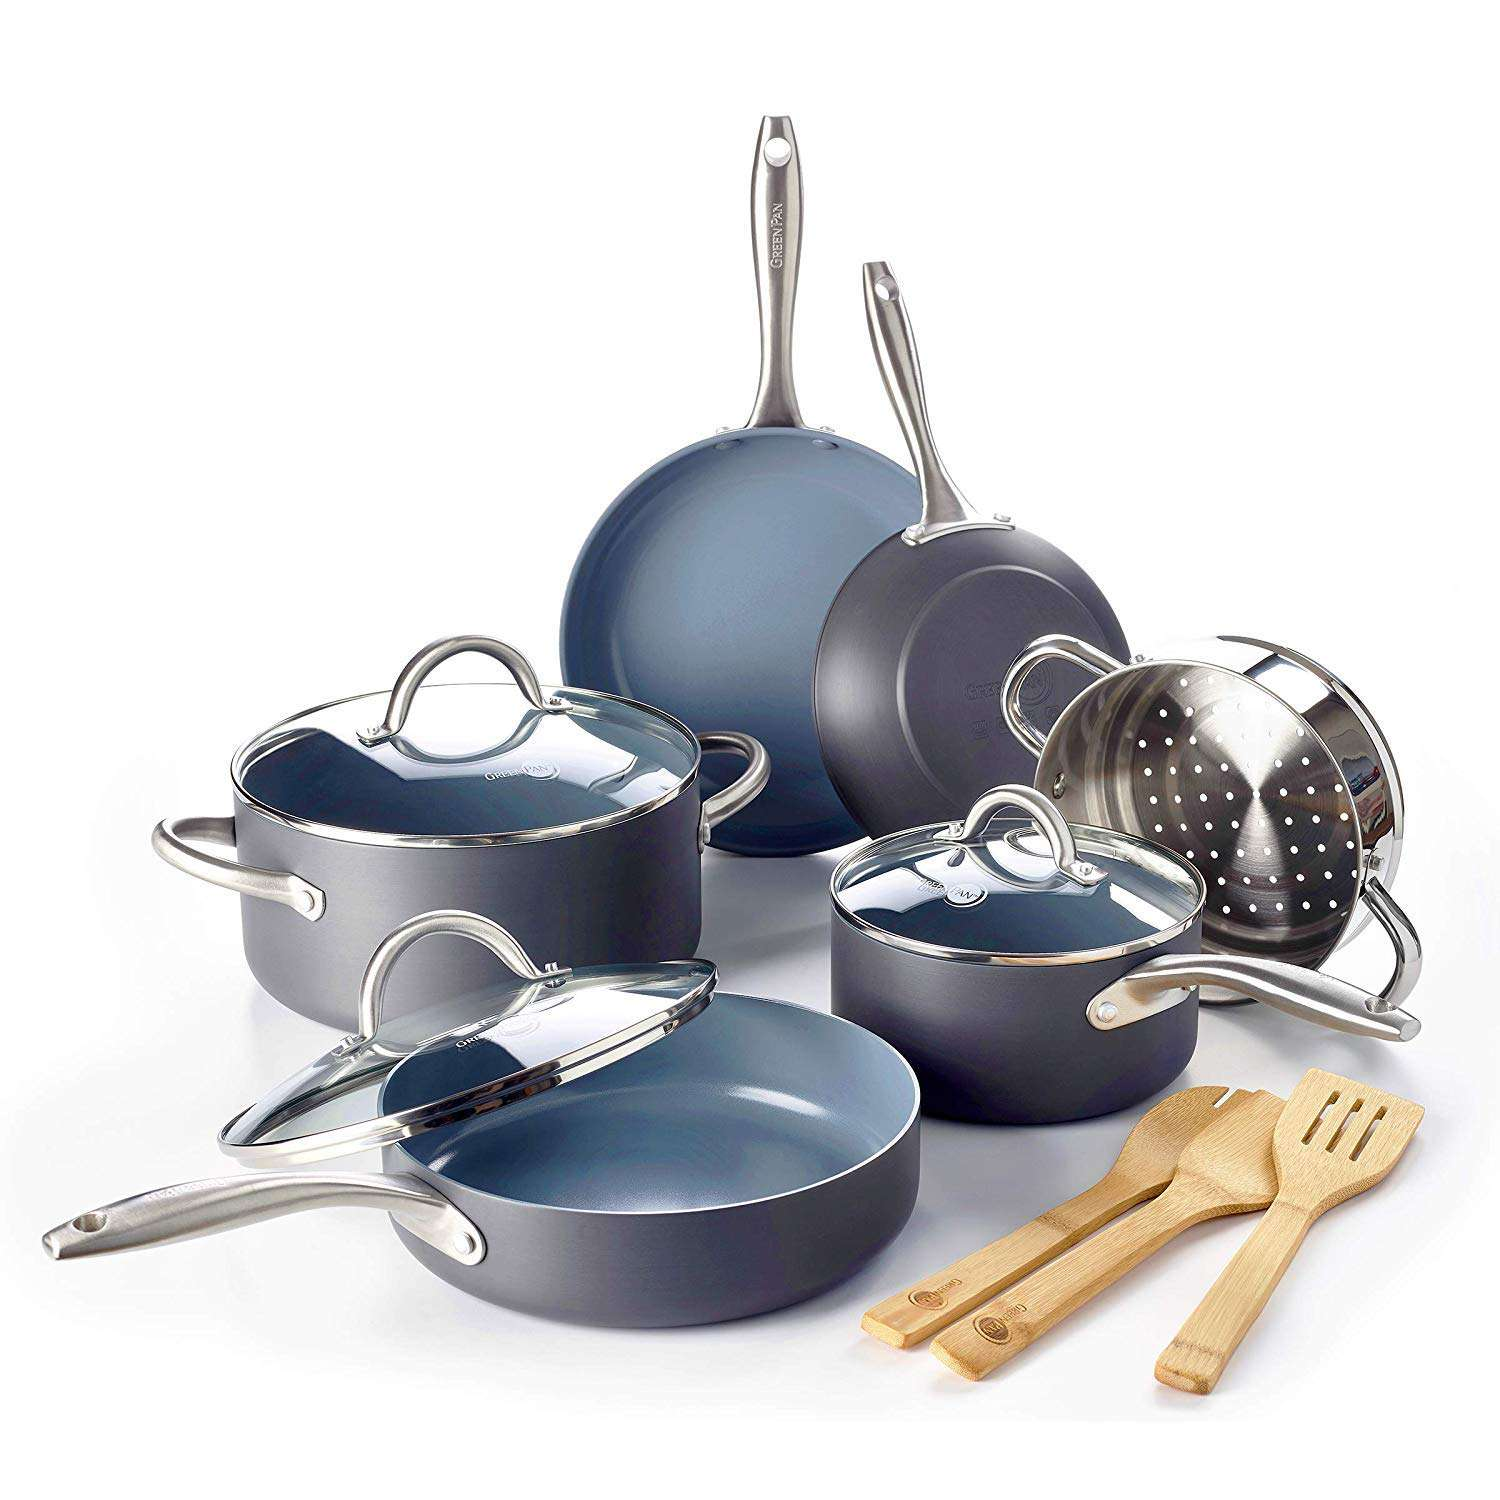 The Best 8 Ceramic Cookware Sets